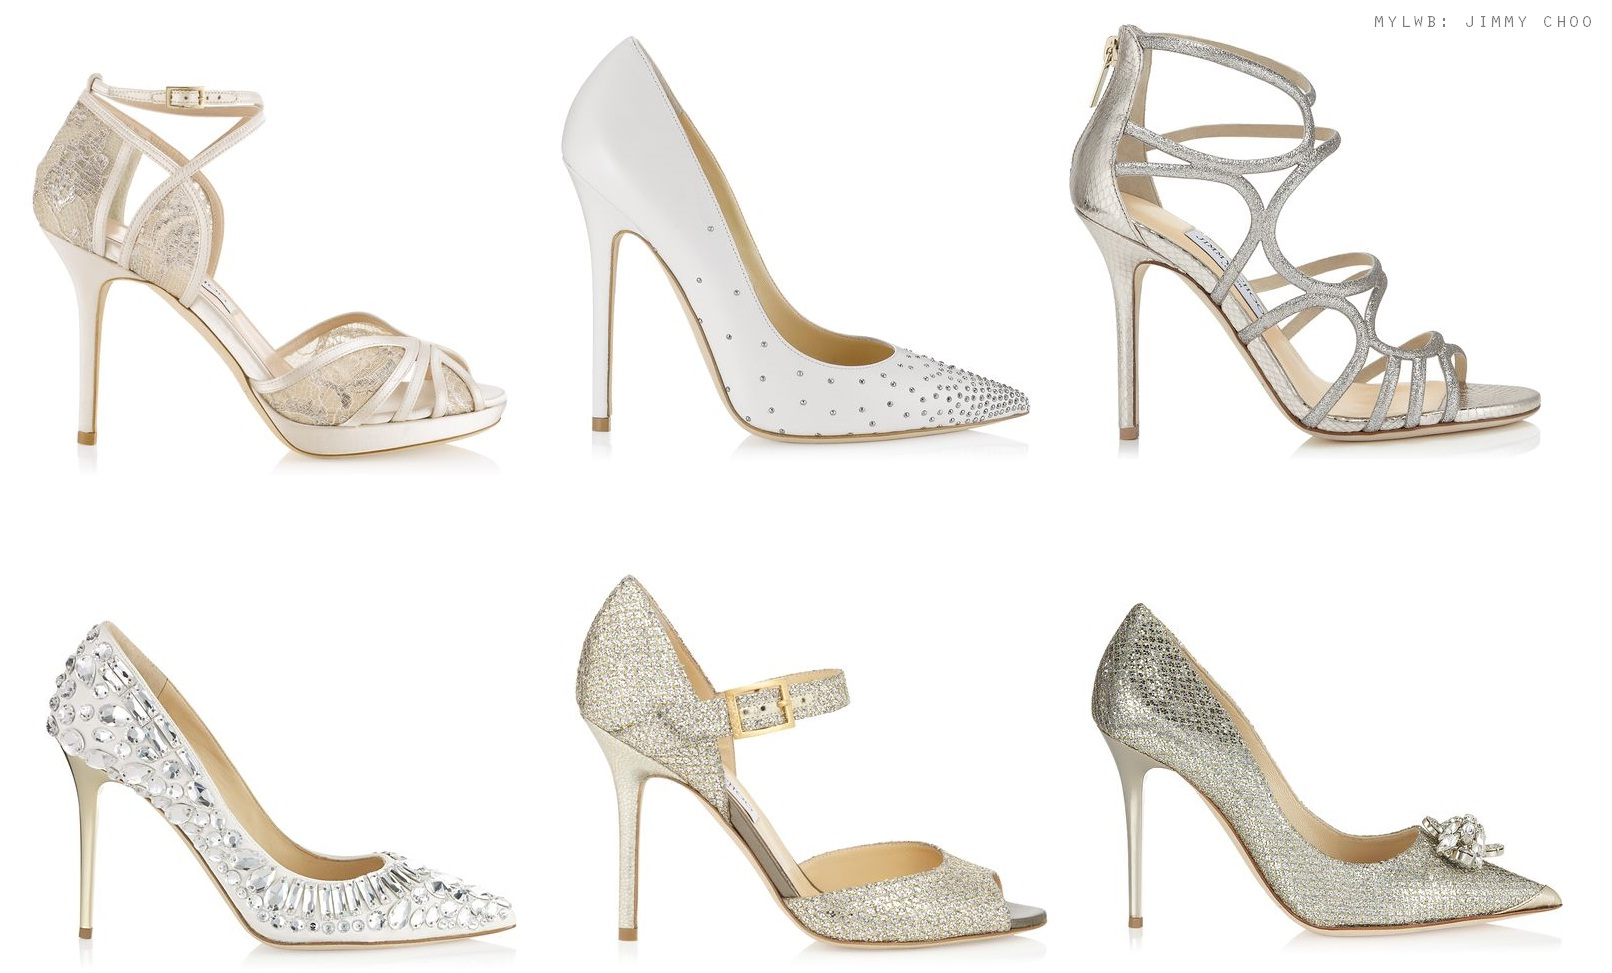 Order Jimmy Choo Bridal Shoes - Category The Edit Bridal Shoes Accessories